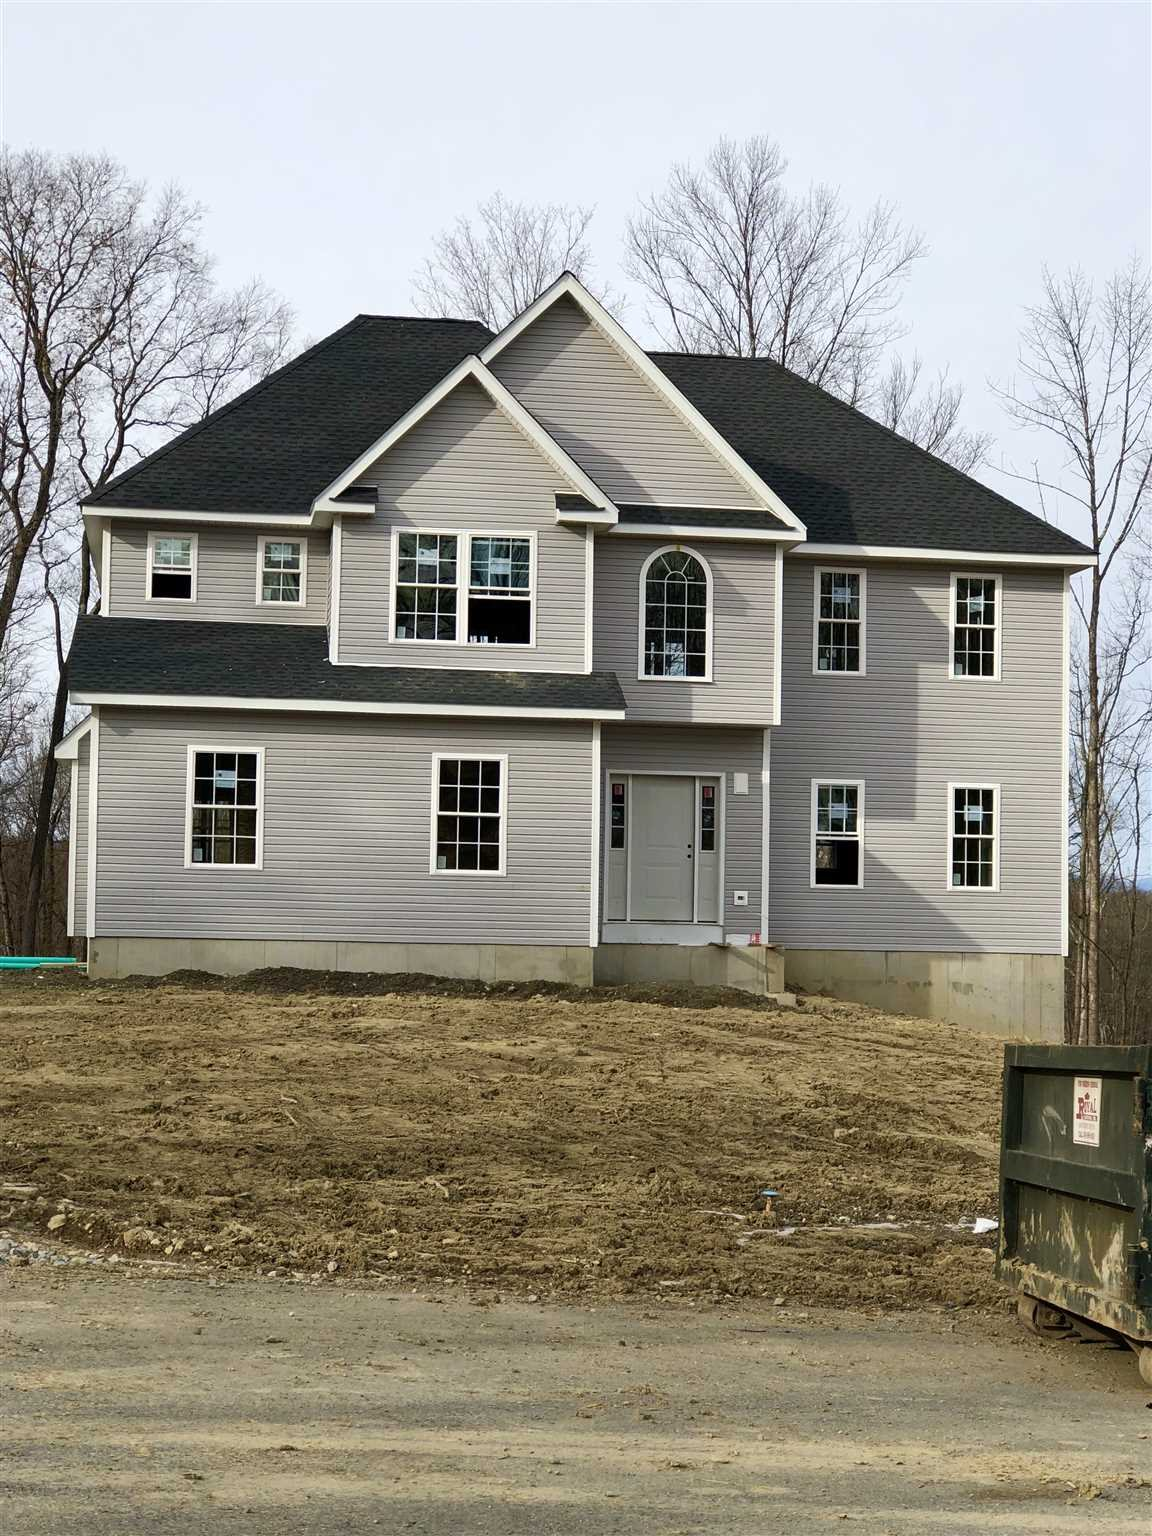 Single Family Home for Sale at LOT 3 POND VIEW Court LOT 3 POND VIEW Court Hyde Park, New York 12580 United States